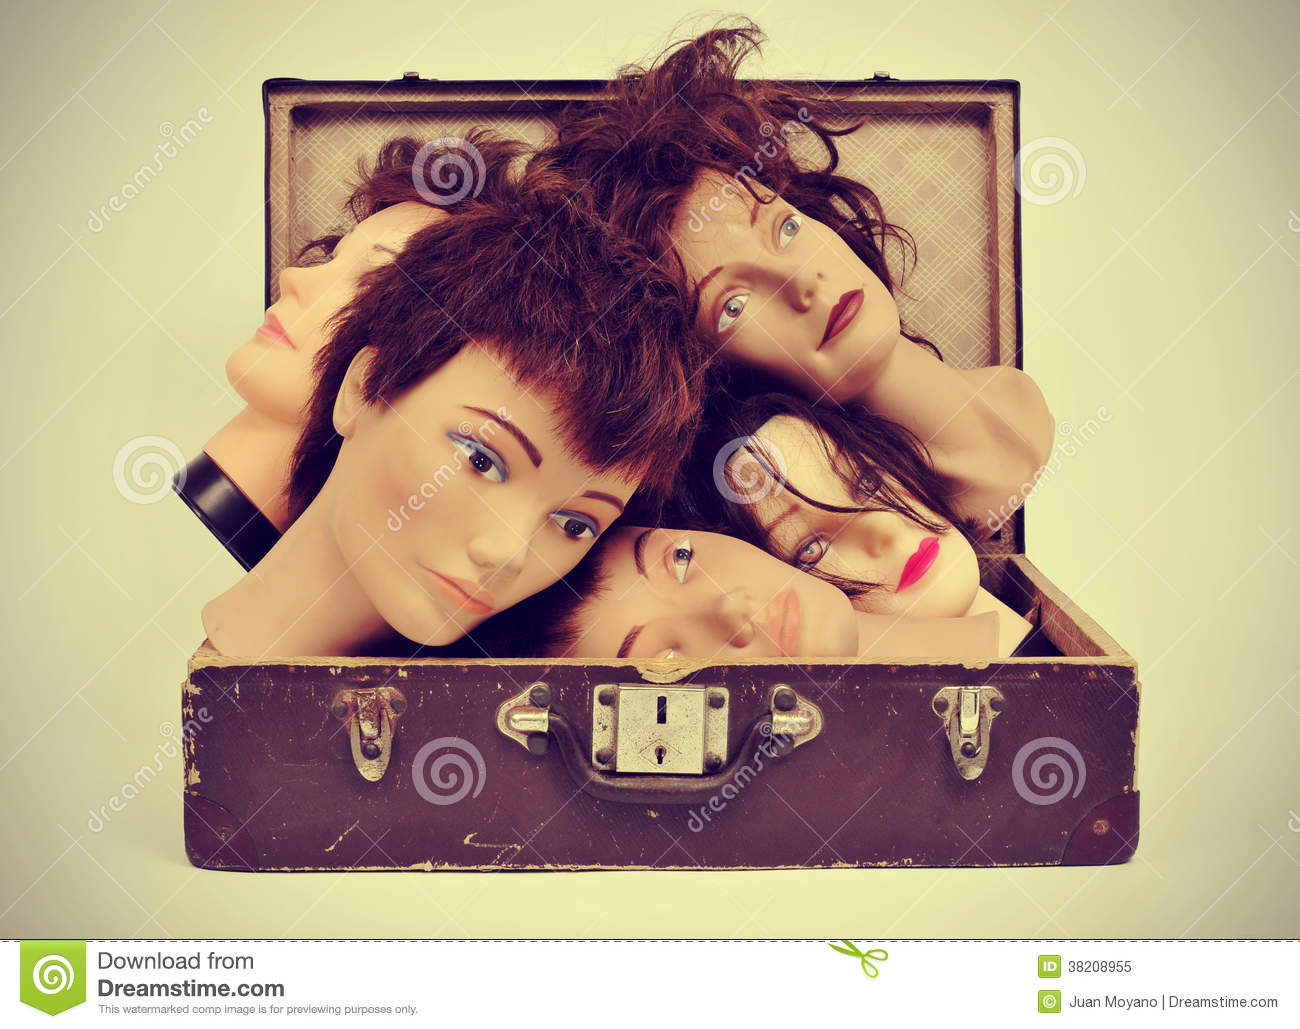 Mannequin heads in an old suitcase